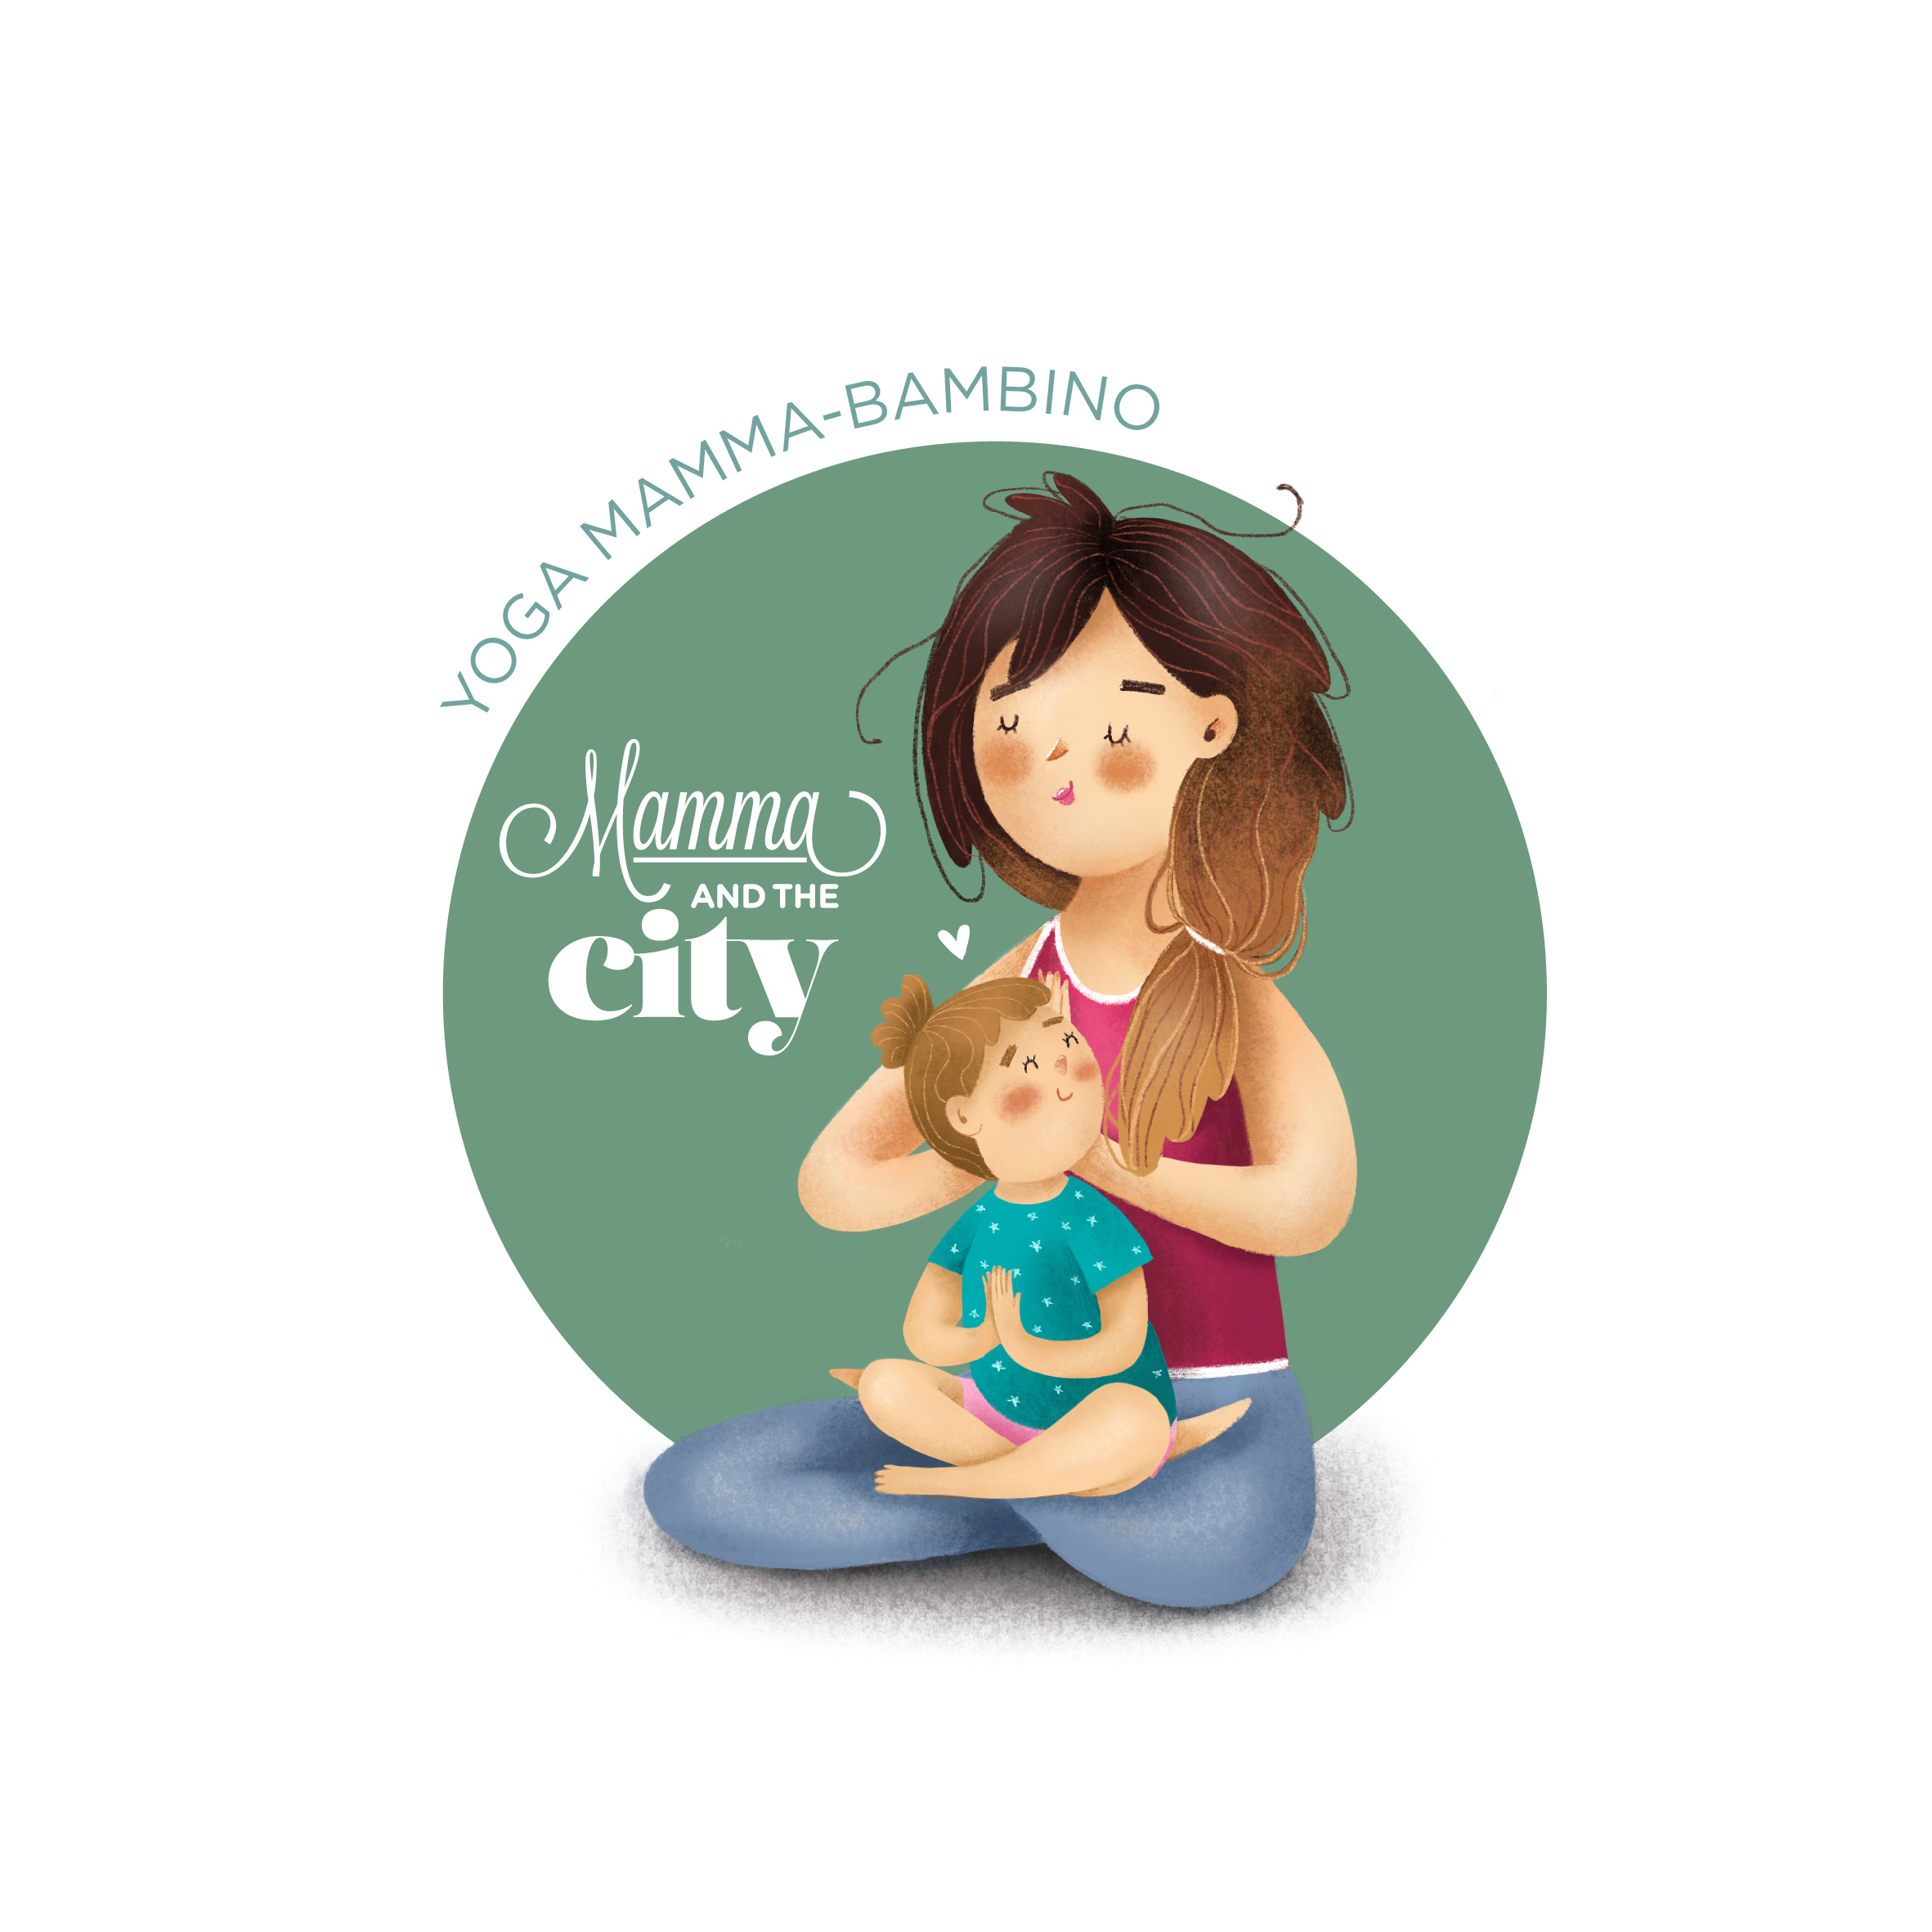 mamma and the city – YOGA mamma bimbo